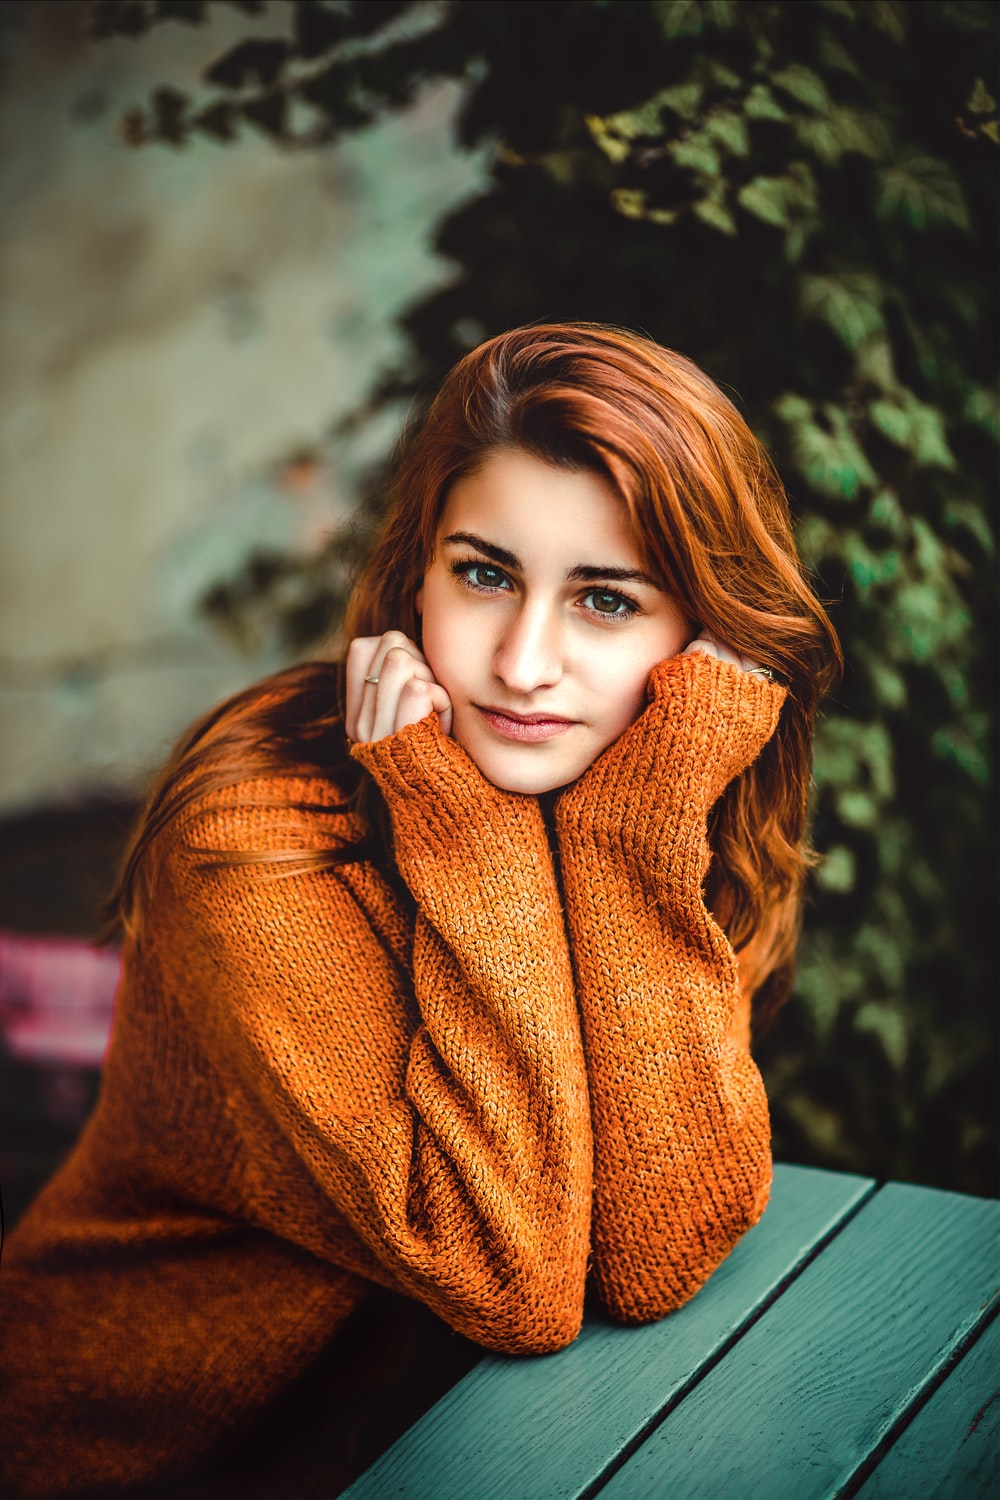 woman in brown knit sweater on green table